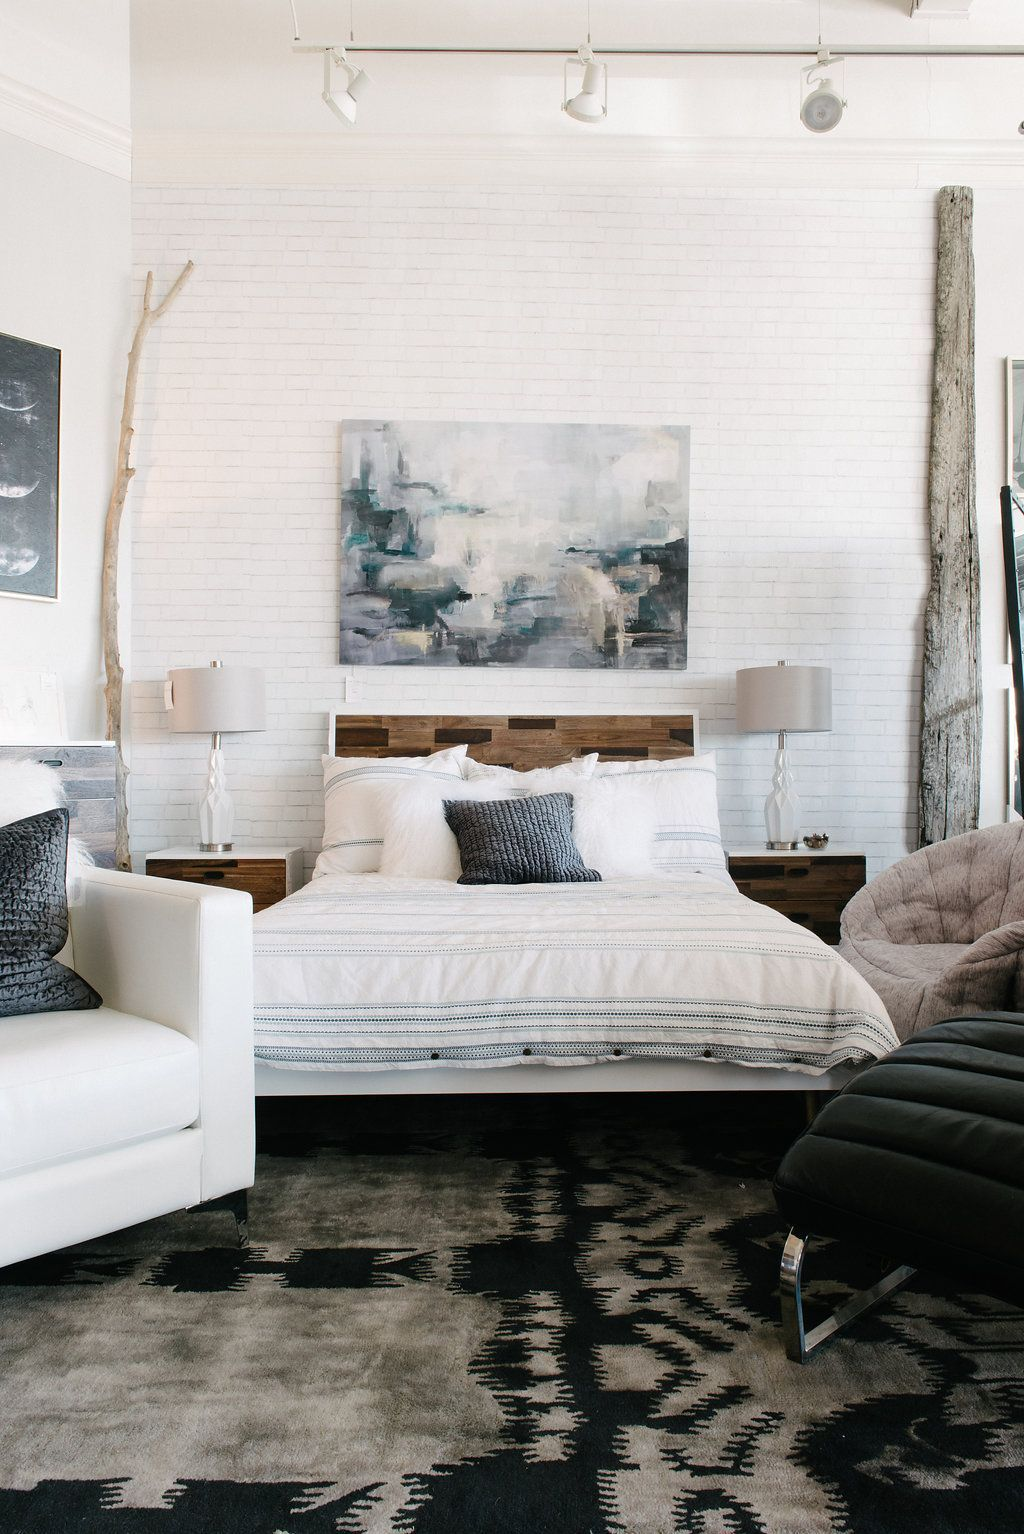 This is what happens when a modern bohemian bedroom meets global